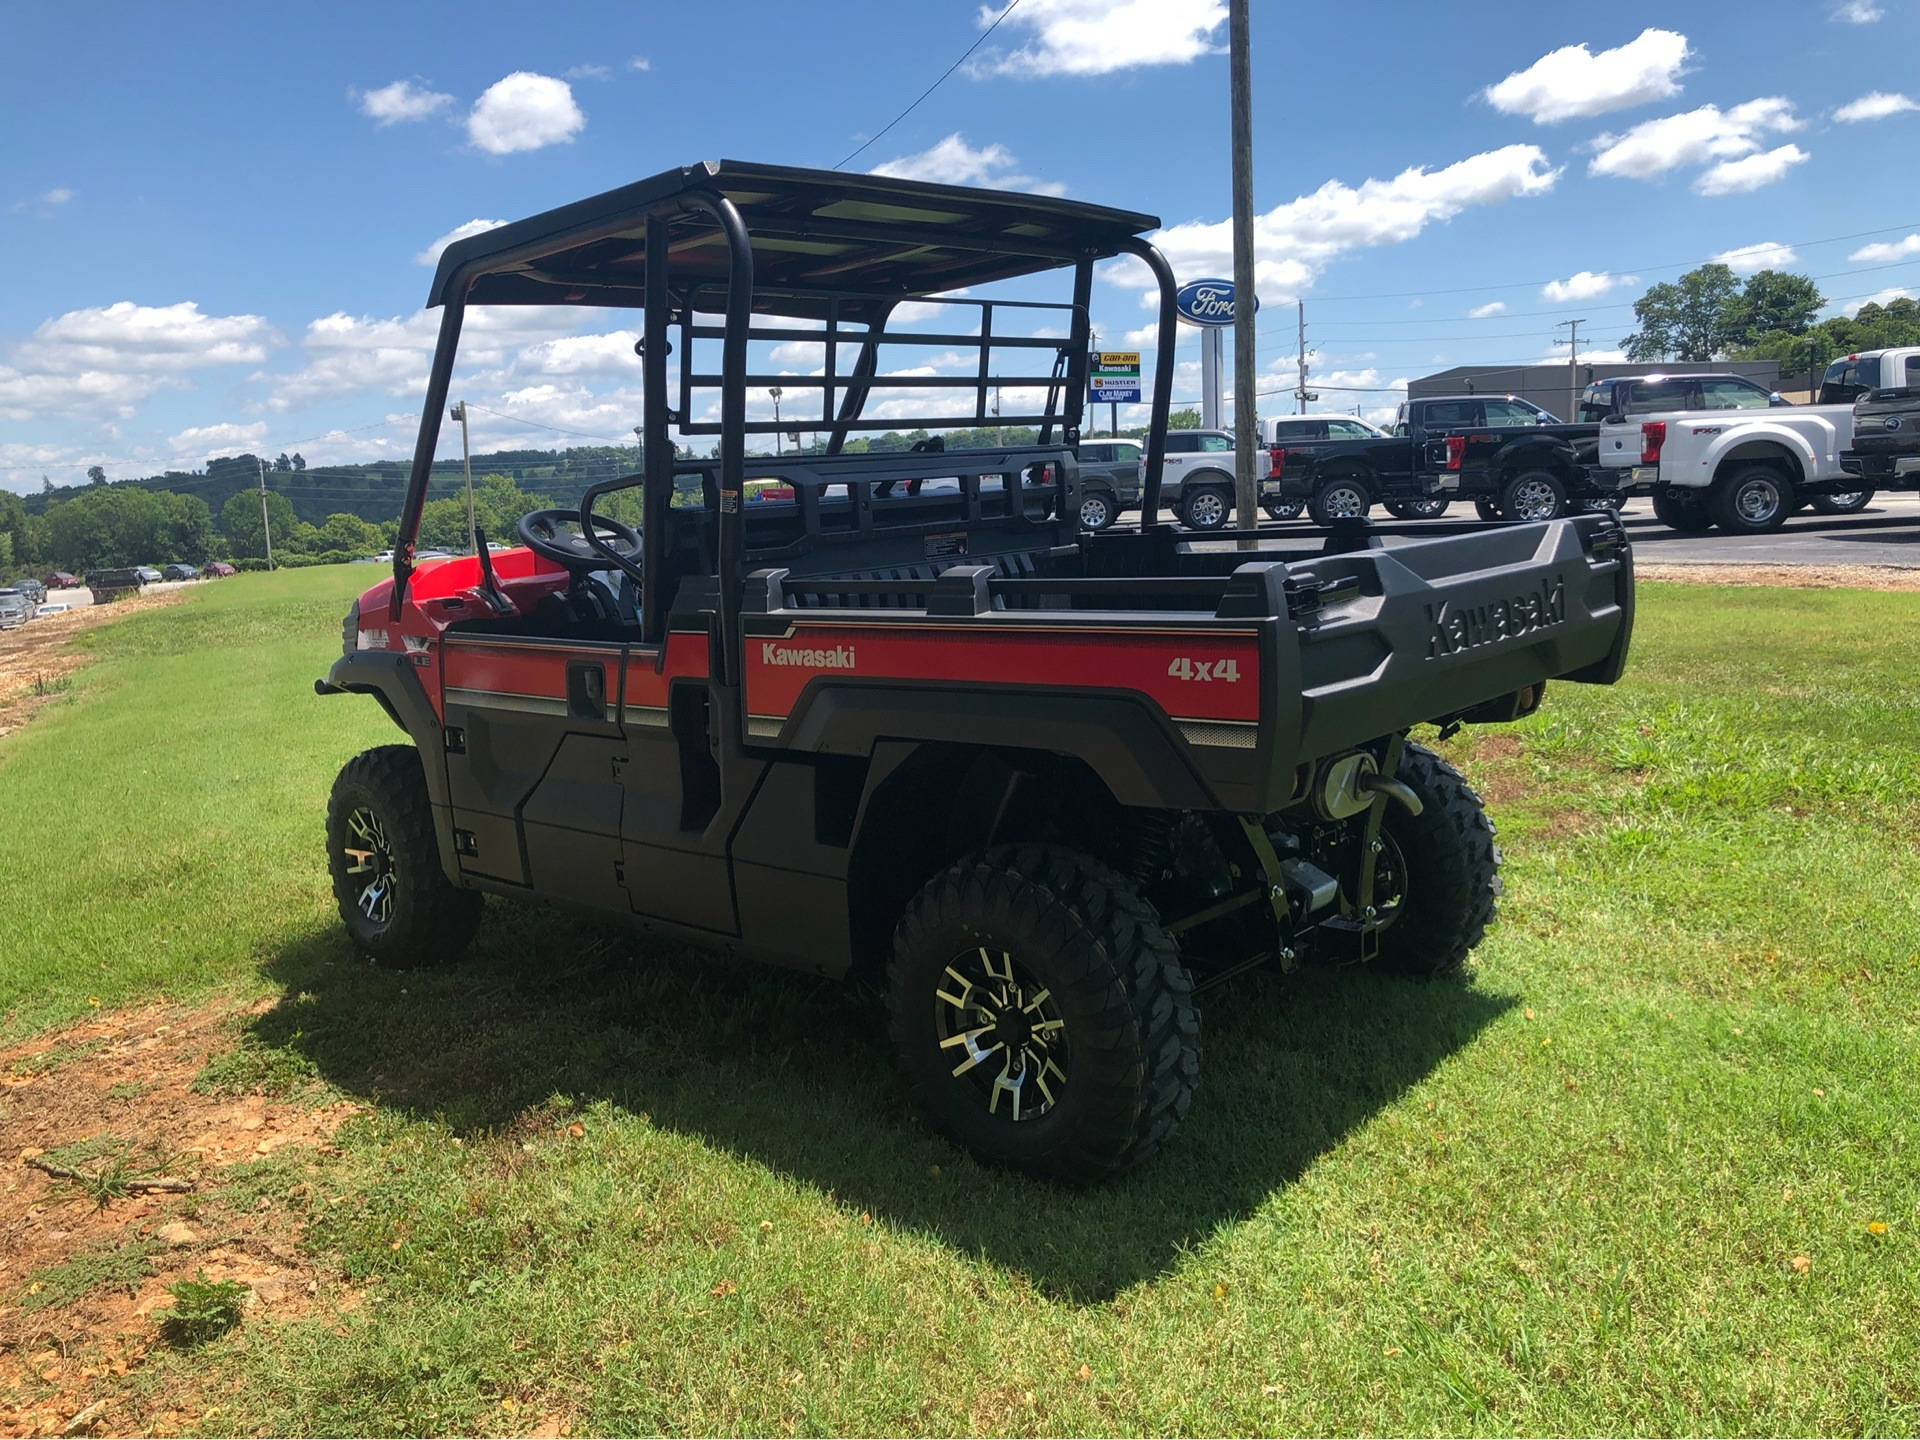 2020 Kawasaki Mule PRO-FX EPS LE in Harrison, Arkansas - Photo 3